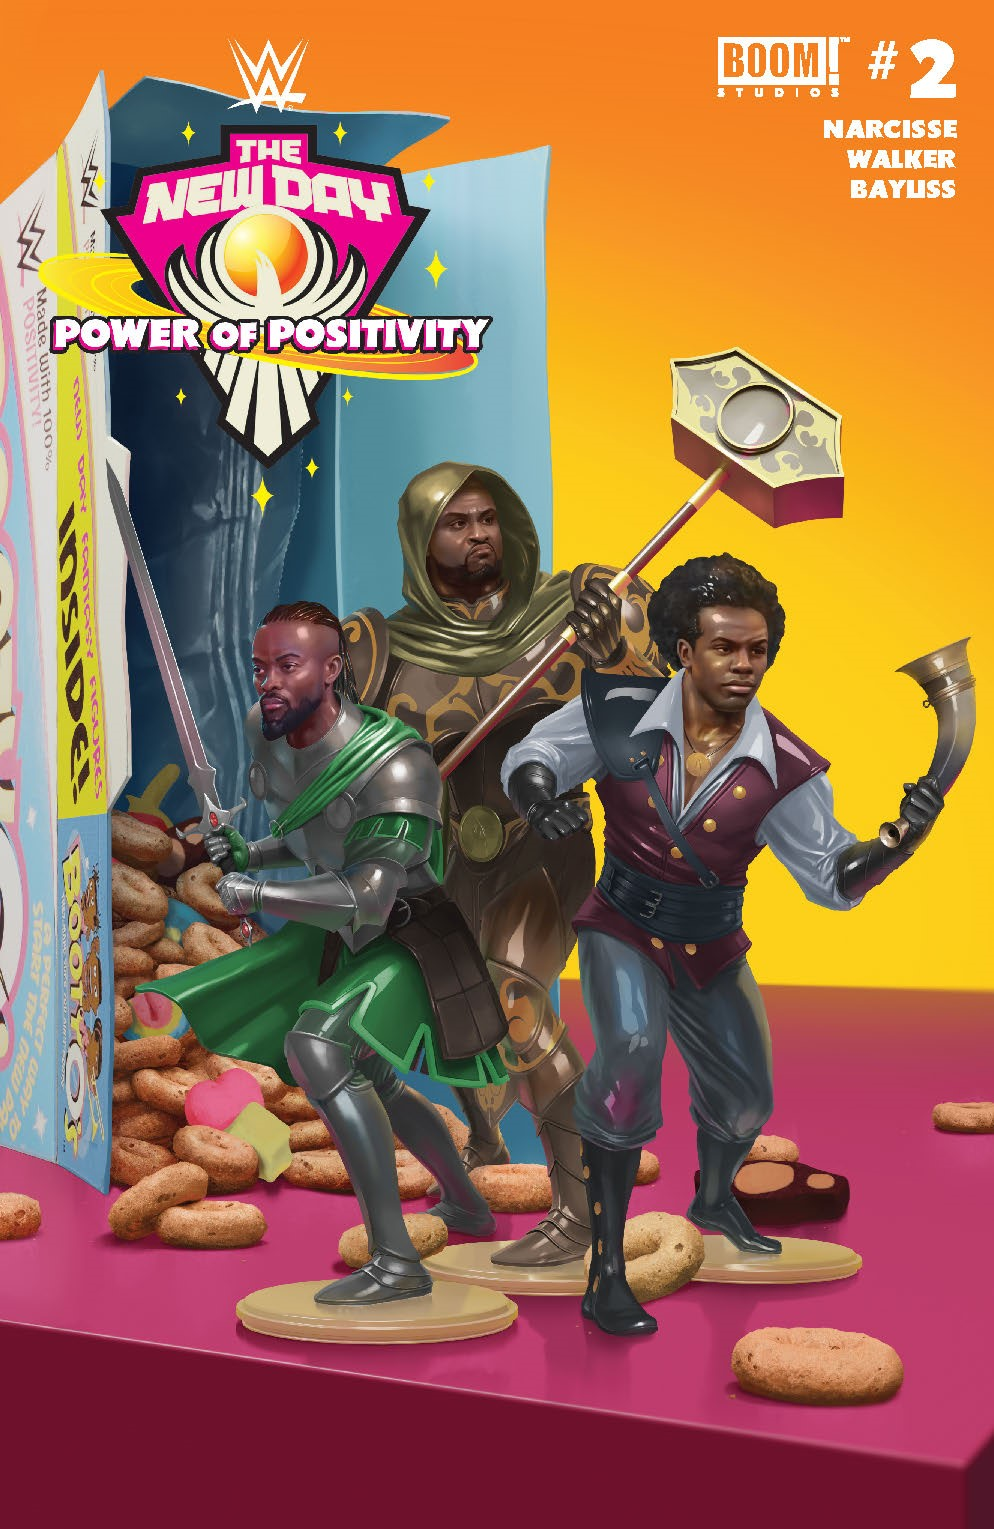 WWE_NewDay_002_Cover_B_Connecting ComicList Previews: WWE THE NEW DAY POWER OF POSITIVITY #2 (OF 2)